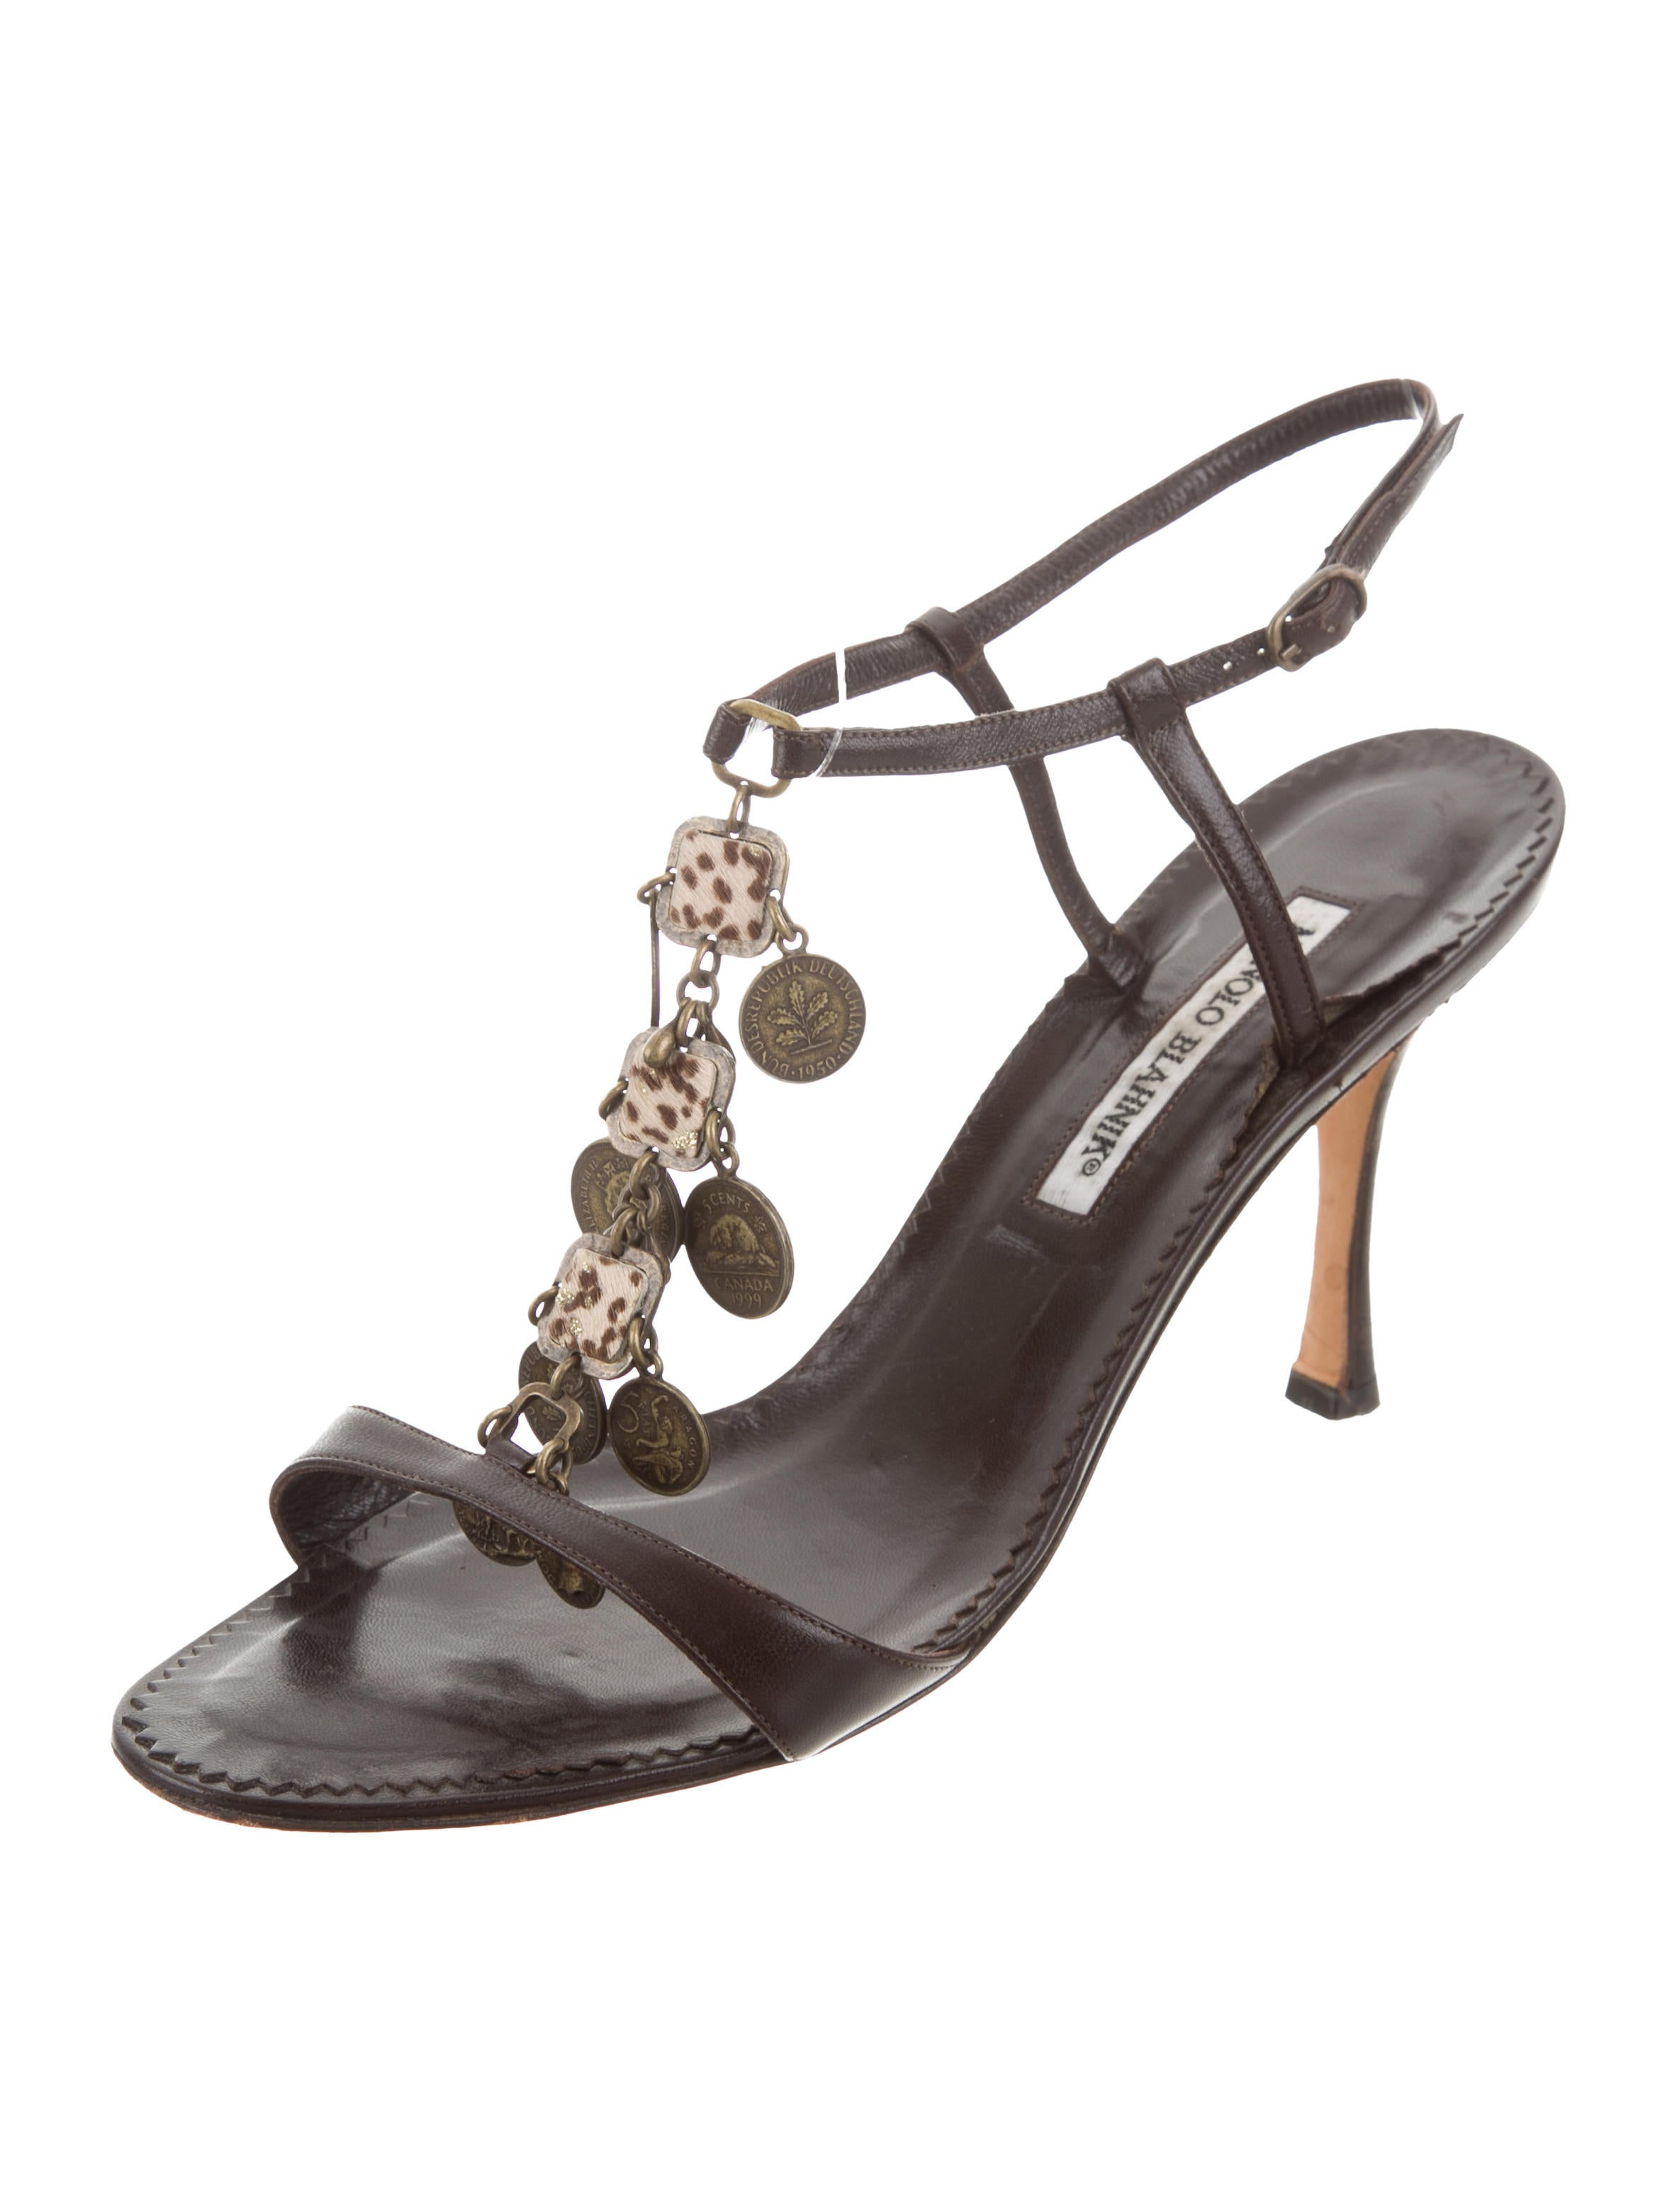 clearance Cheapest Manolo Blahnik Leather Coin-Embellished Sandals discount looking for 2maC1Y4h